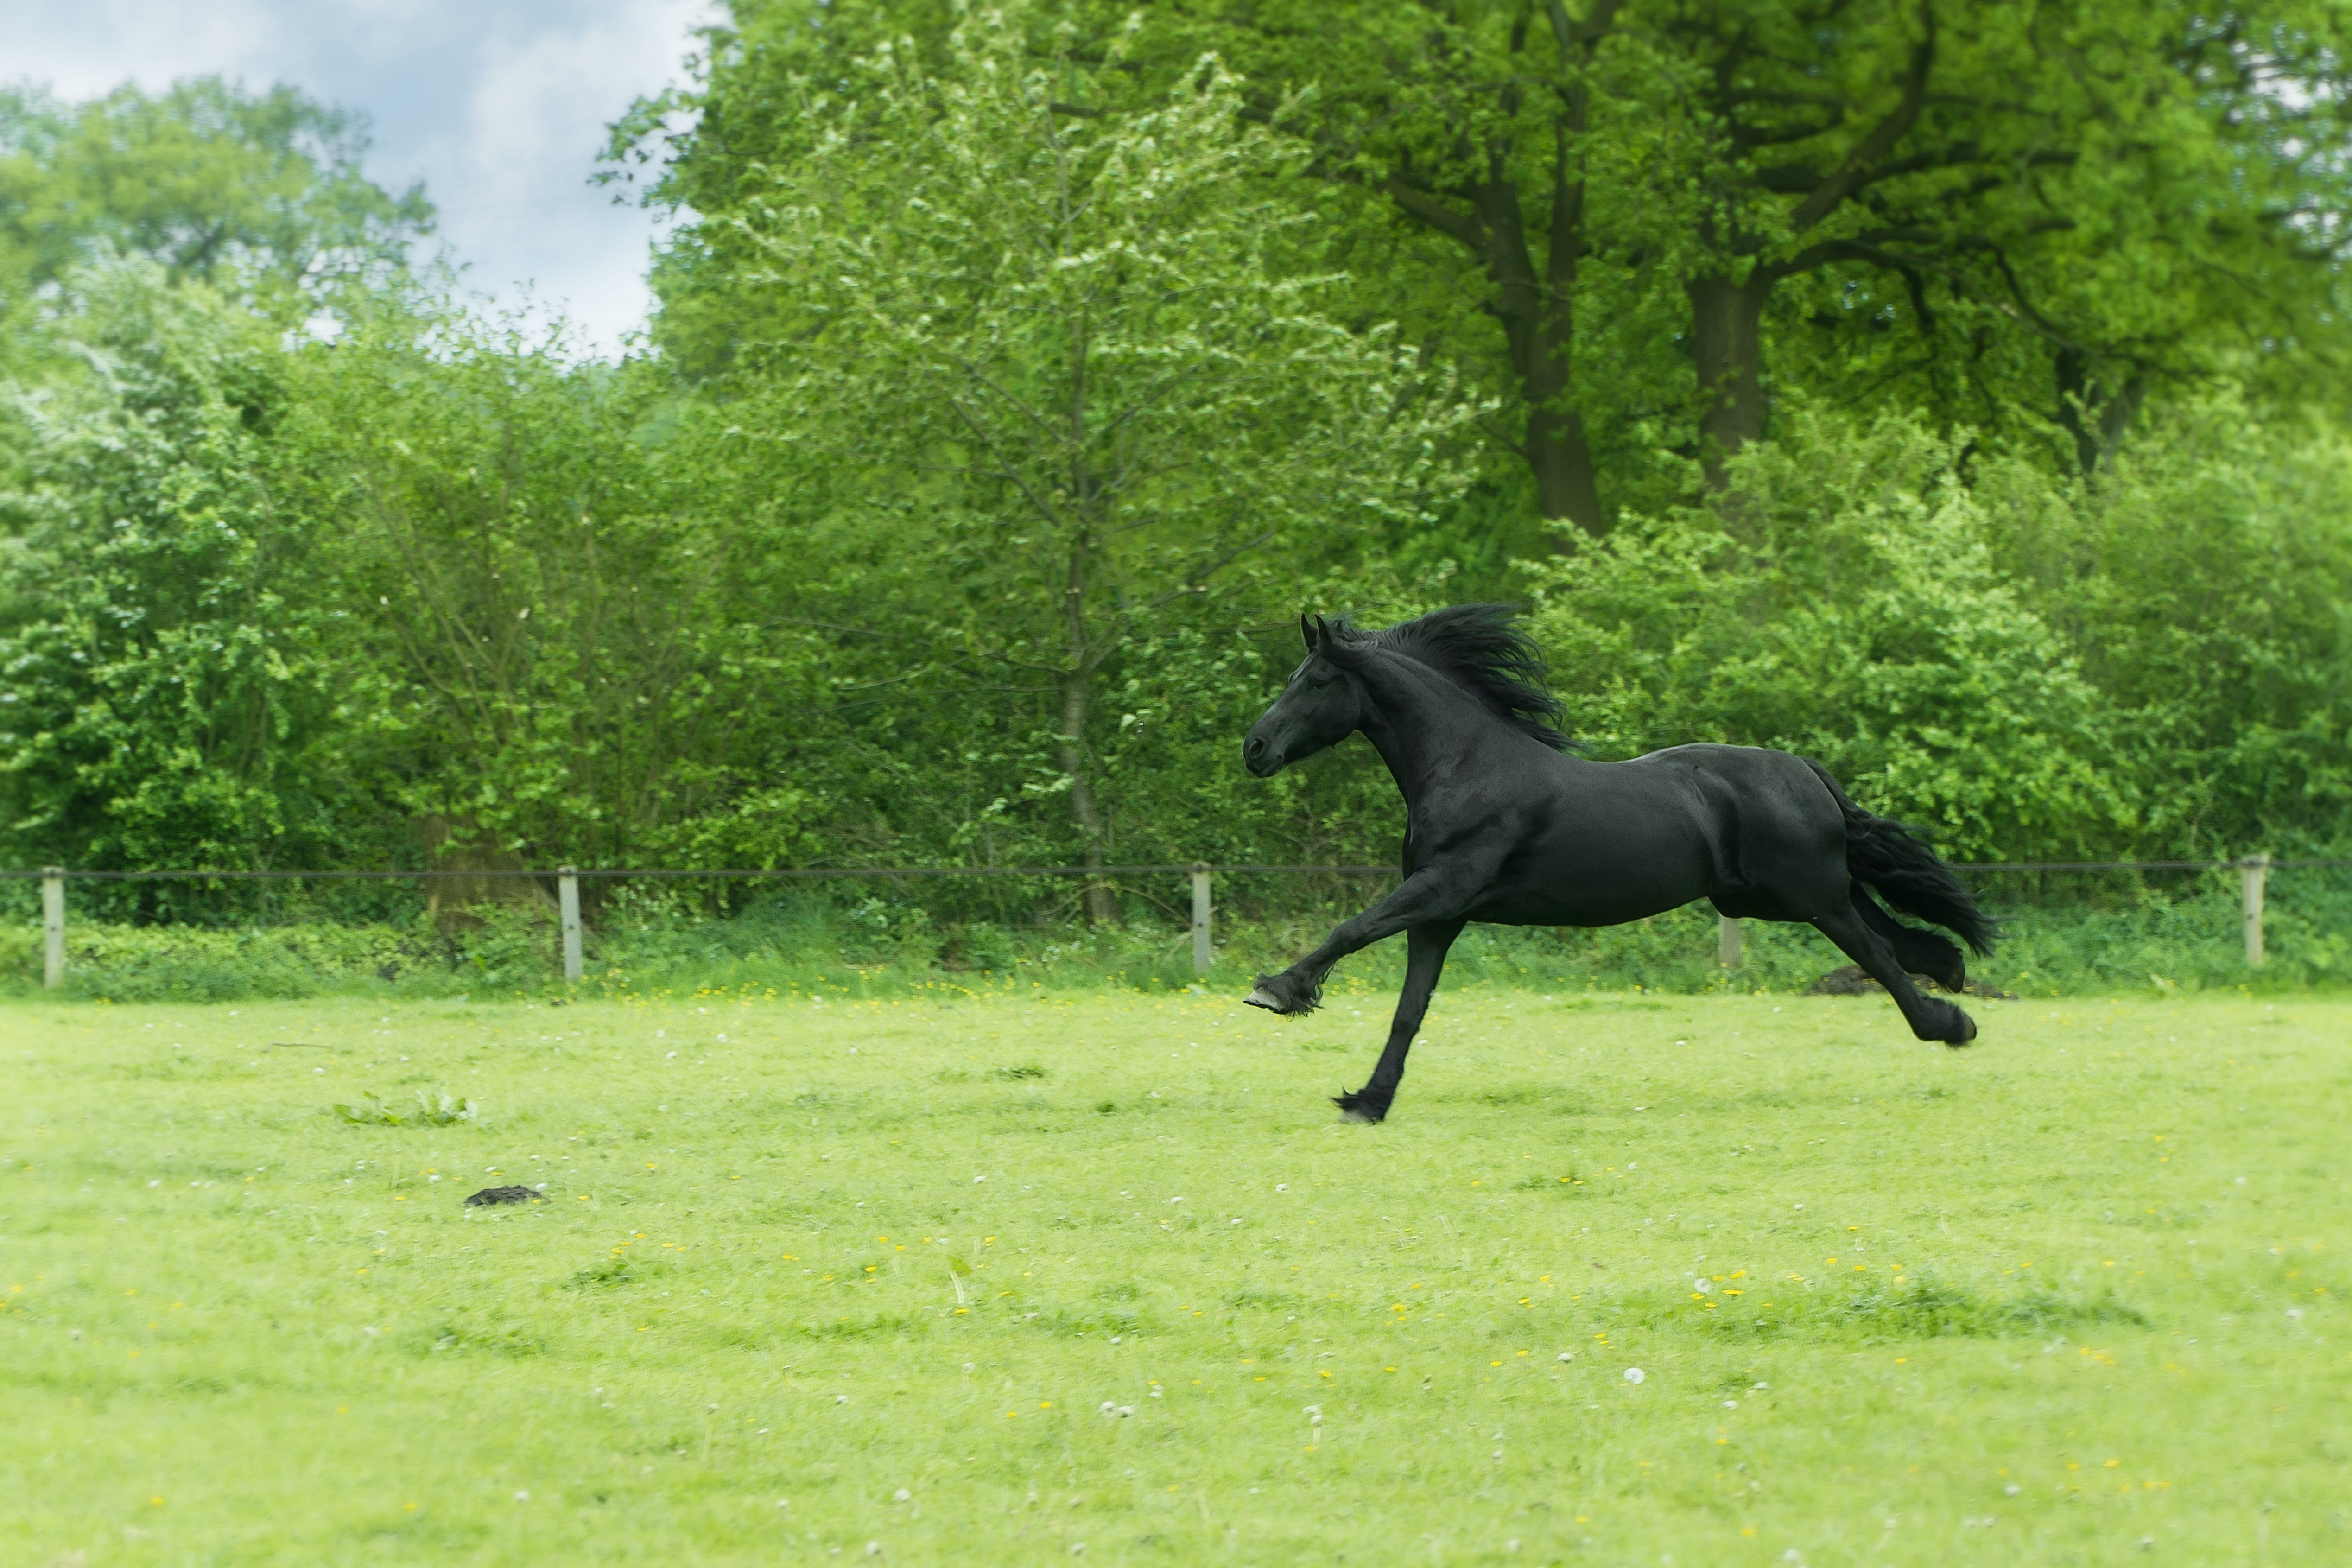 Black Horse Running on Green Field Surrounded With Trees